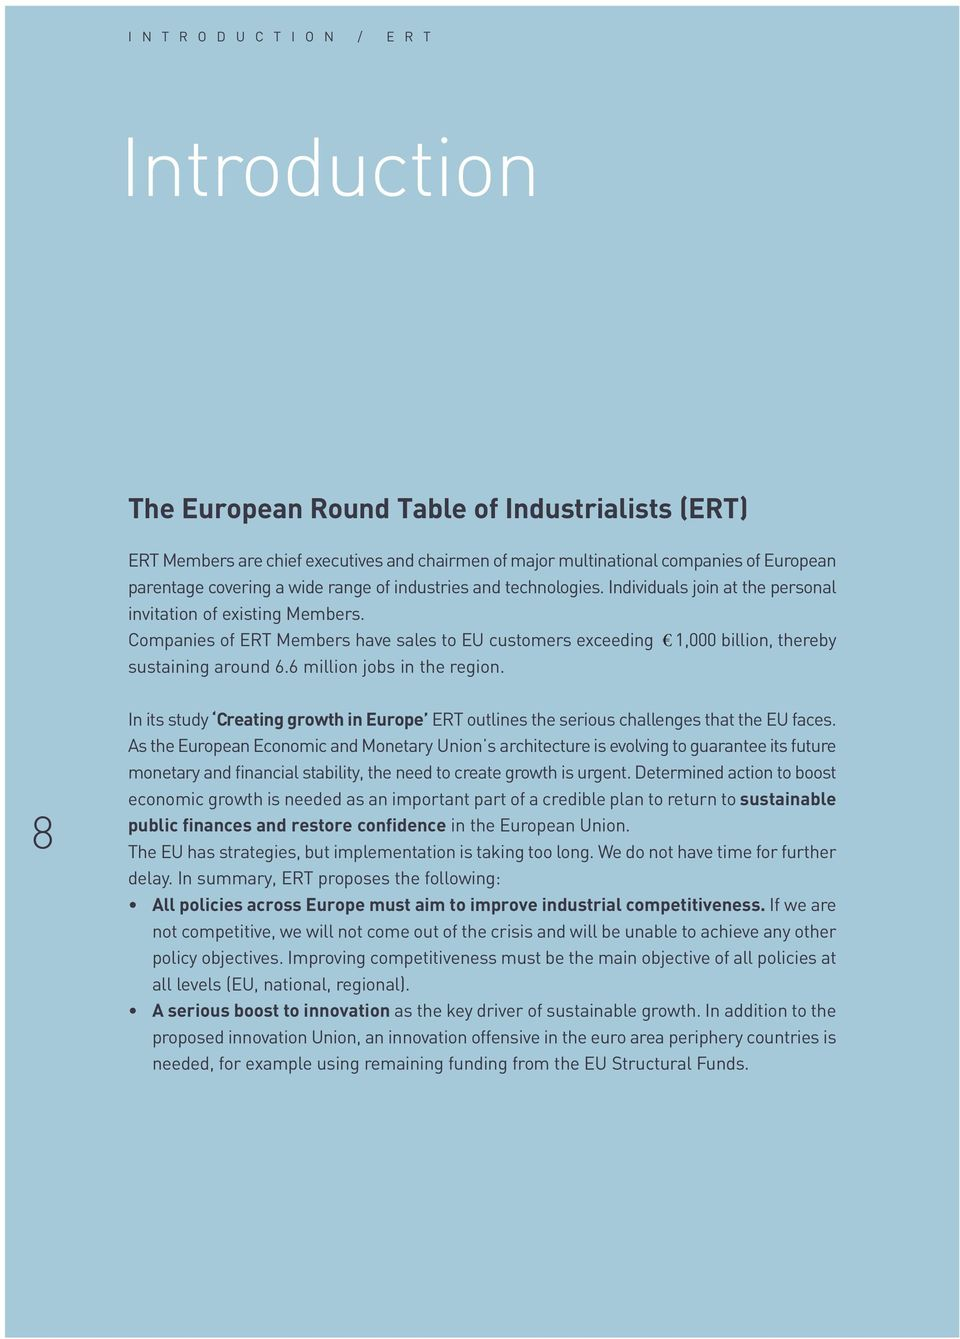 Companies of ERT Members have sales to EU customers exceeding 1,000 billion, thereby sustaining around 6.6 million jobs in the region.